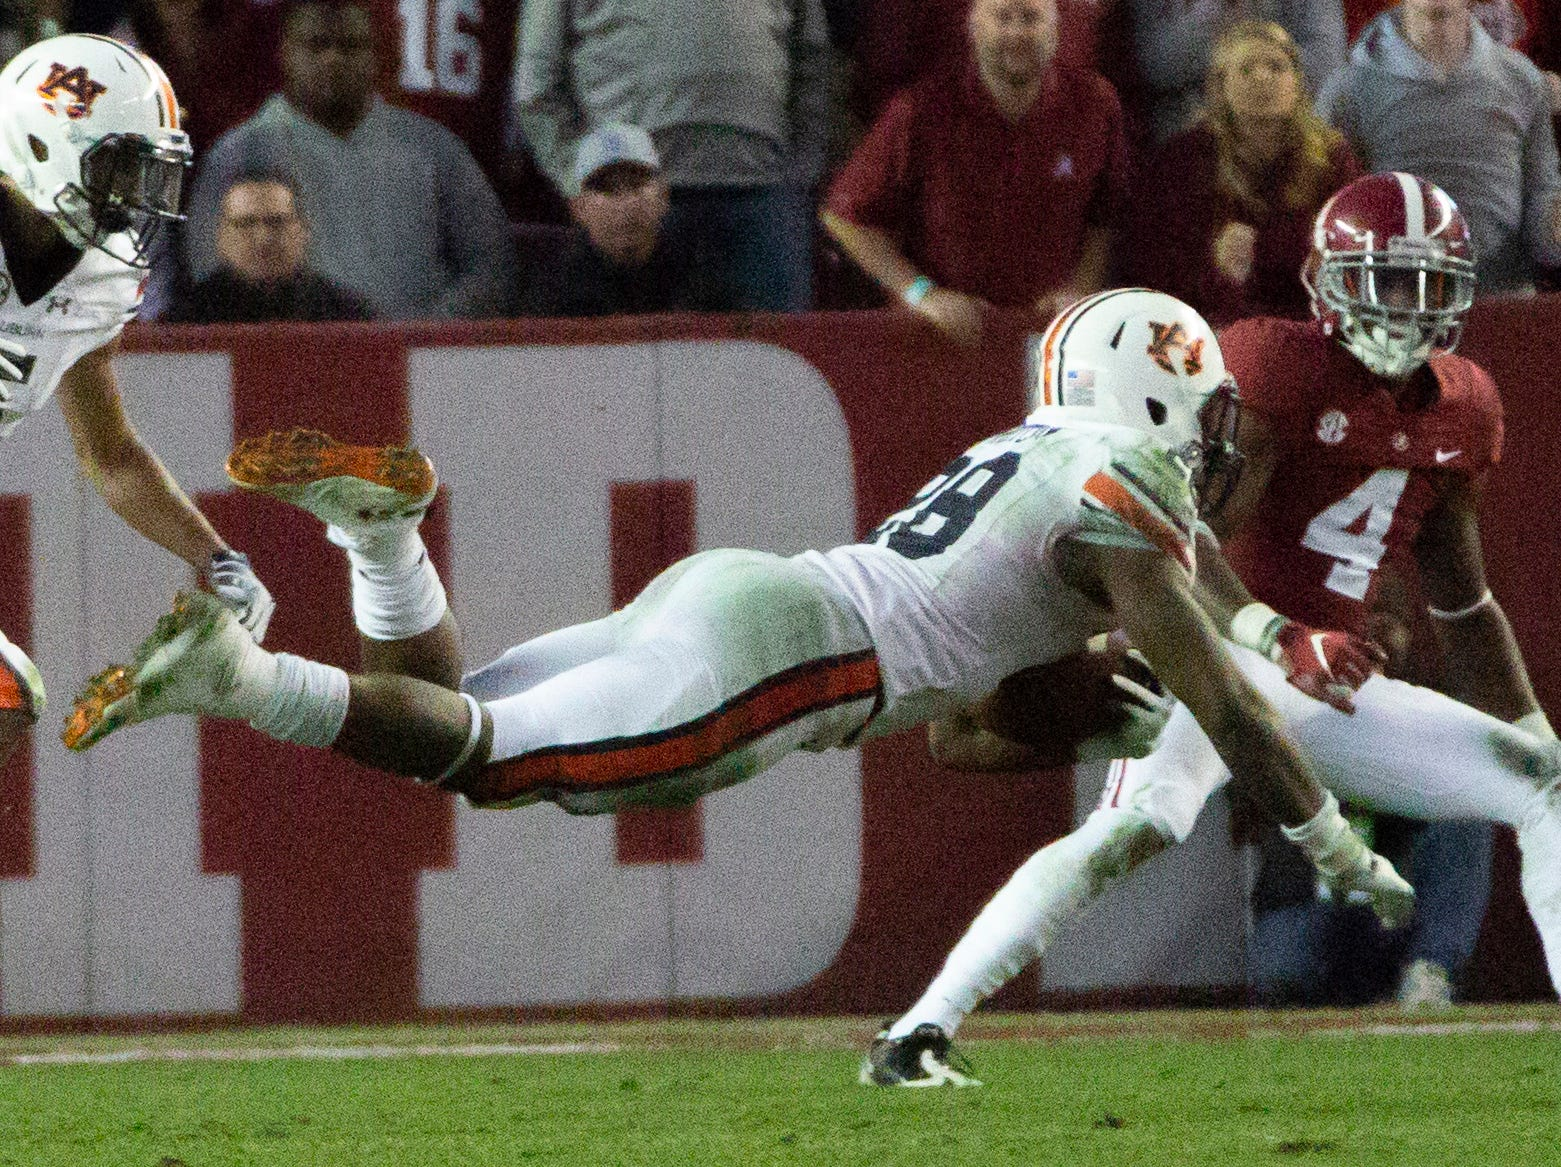 Auburn's JaTarvious Whitlow dives with the ball during the third quarter of the Iron Bowl.